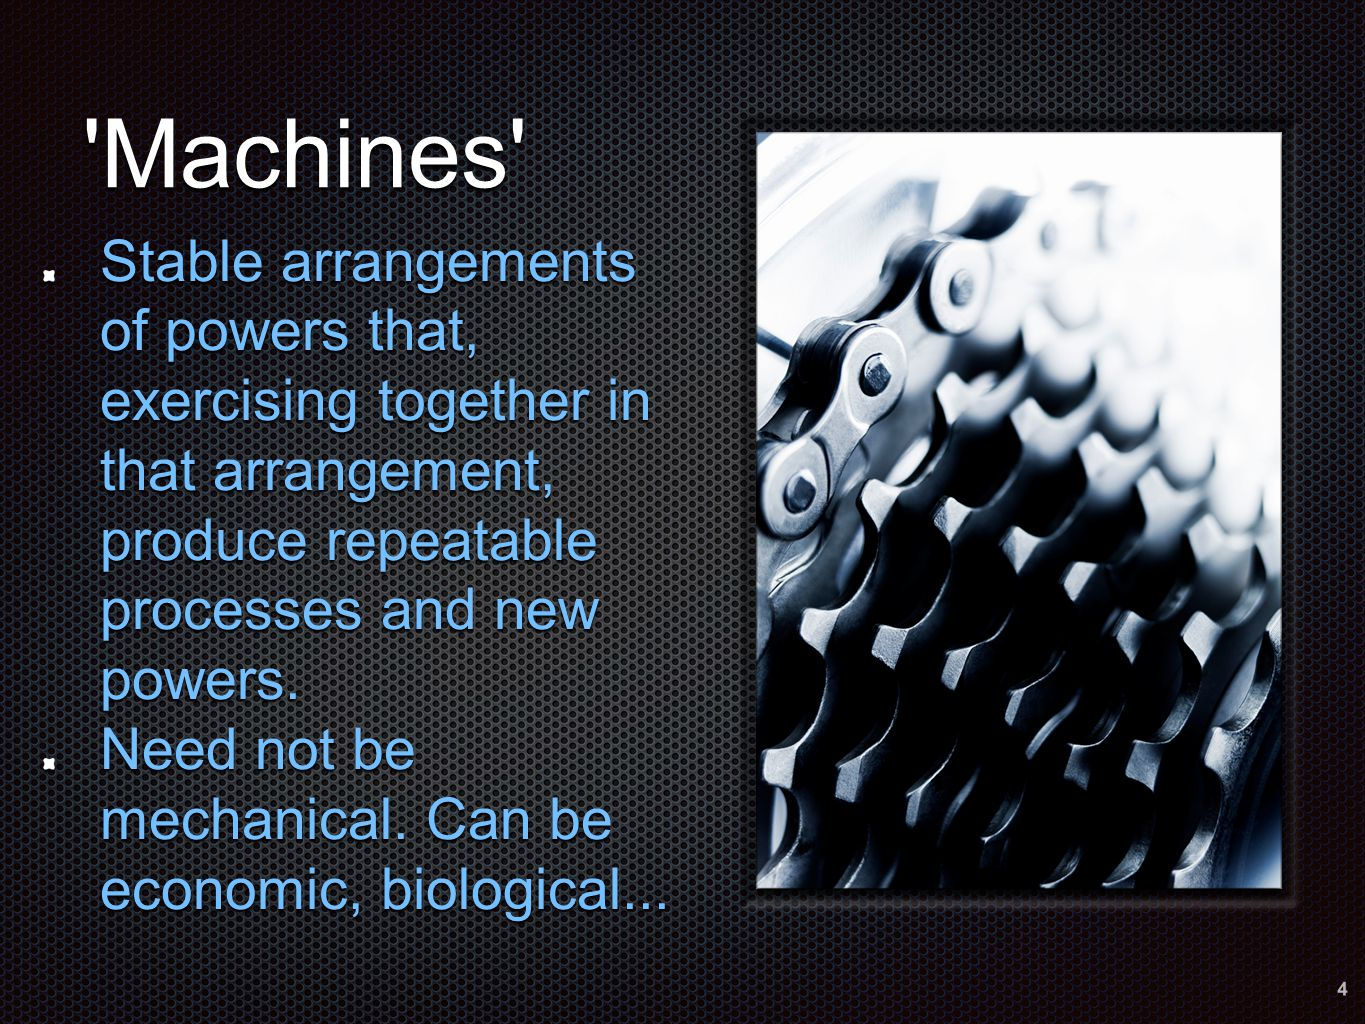 Machines Stable arrangements of powers that, exercising together in that arrangement, produce repeatable processes and new powers.